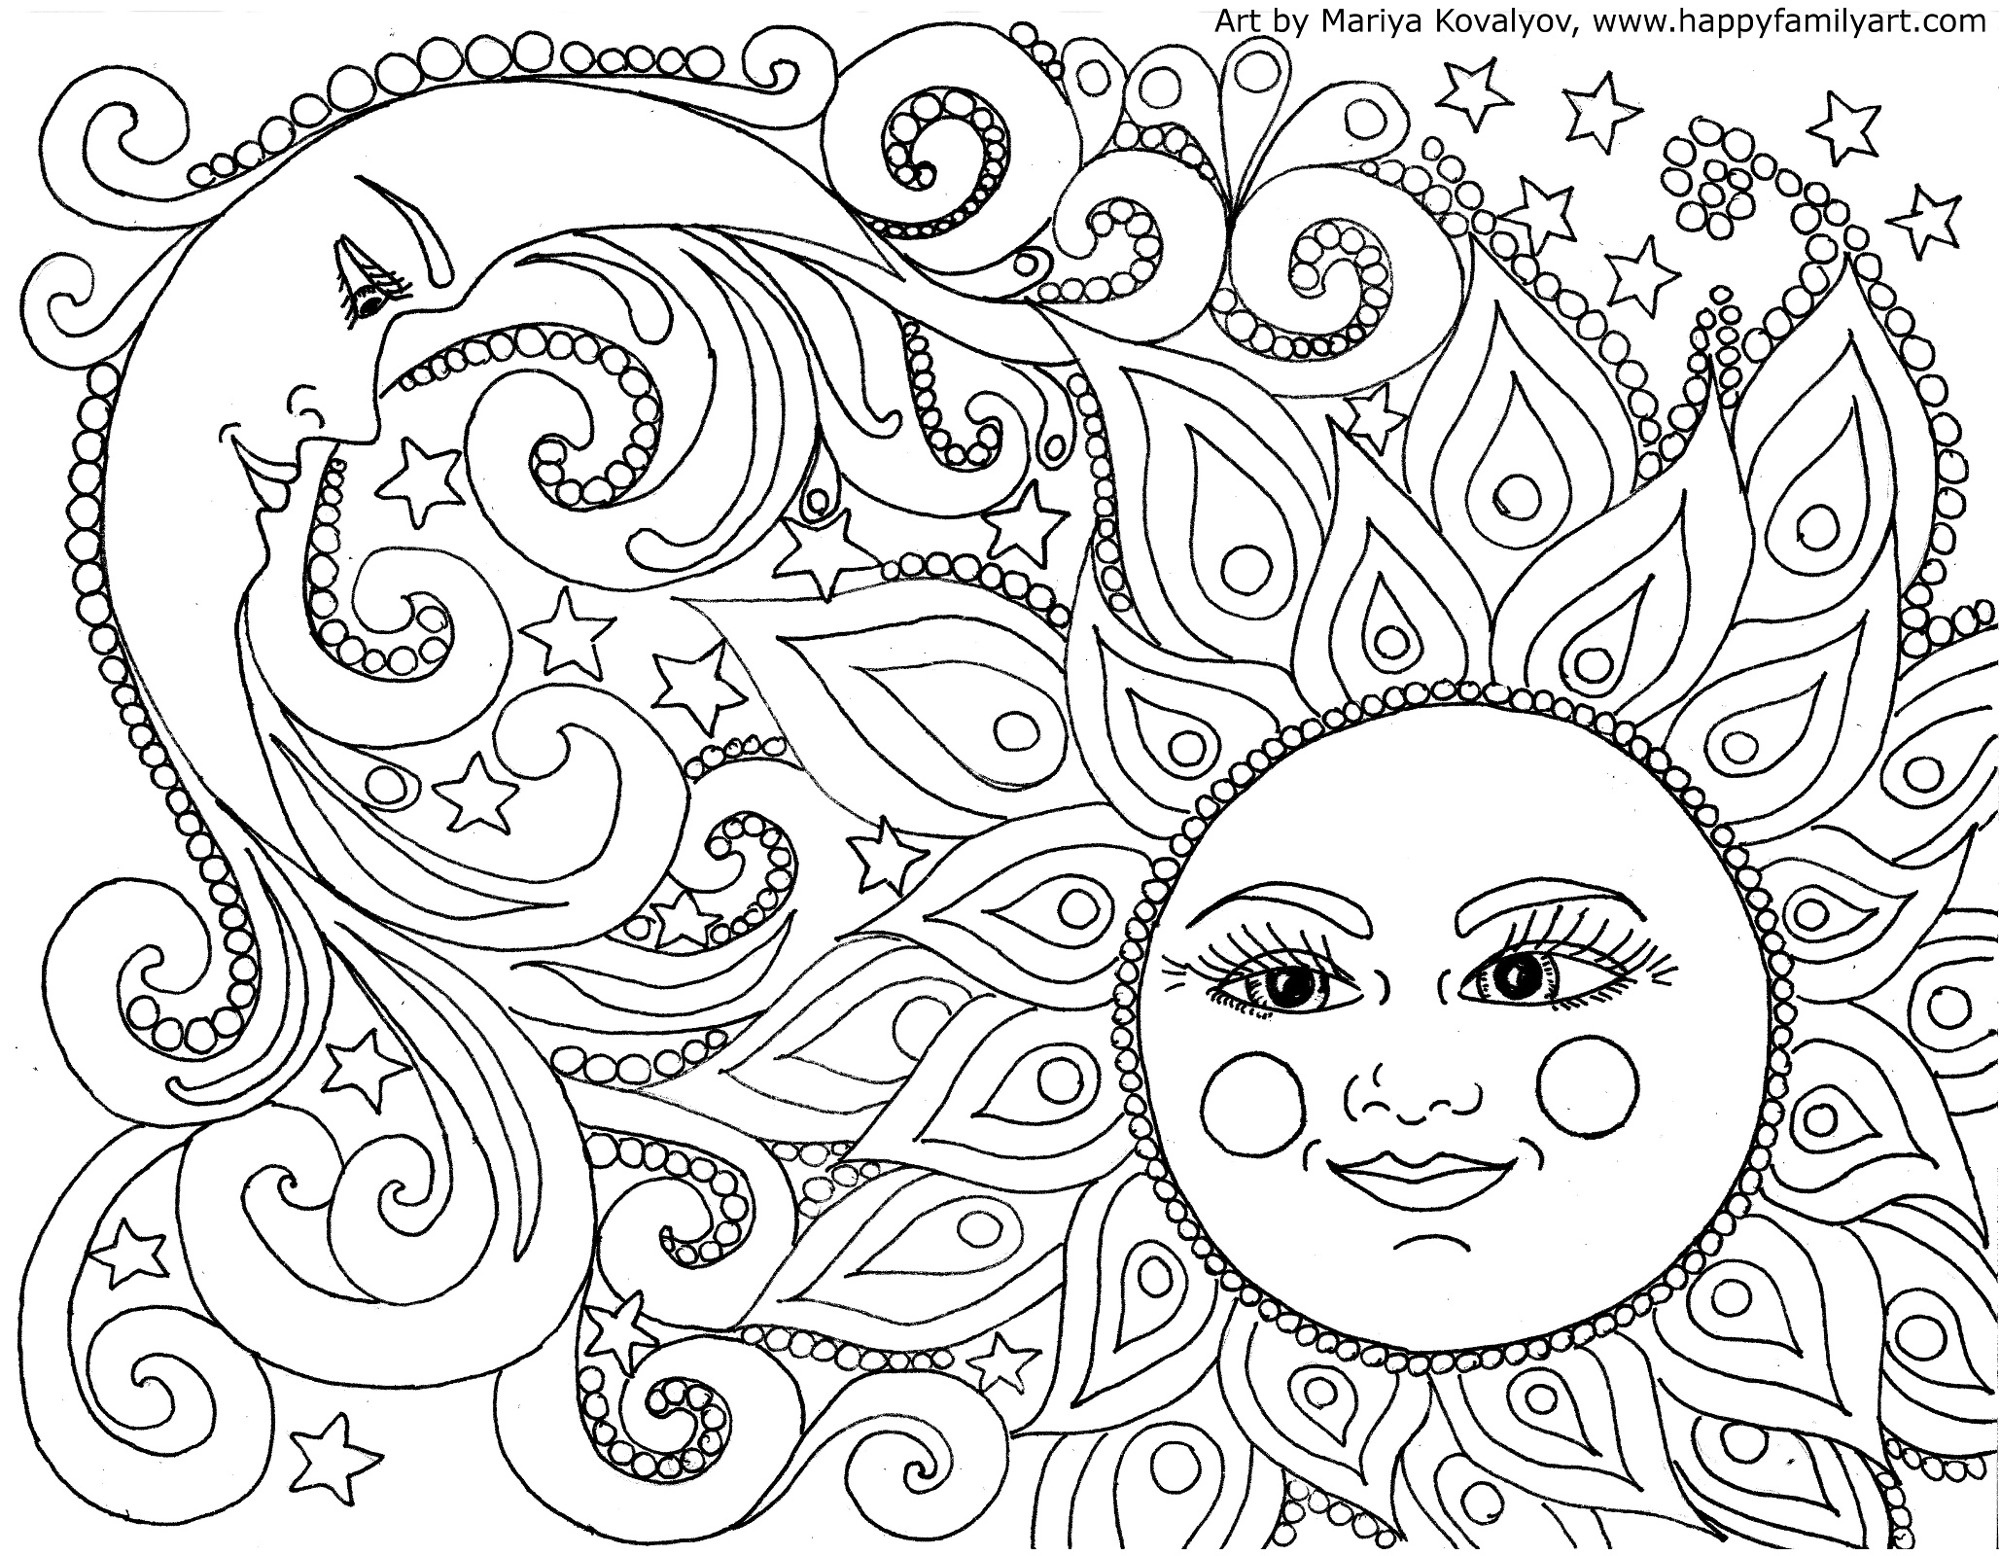 Happy Family Art - Original And Fun Coloring Pages - Free Coloring Printables